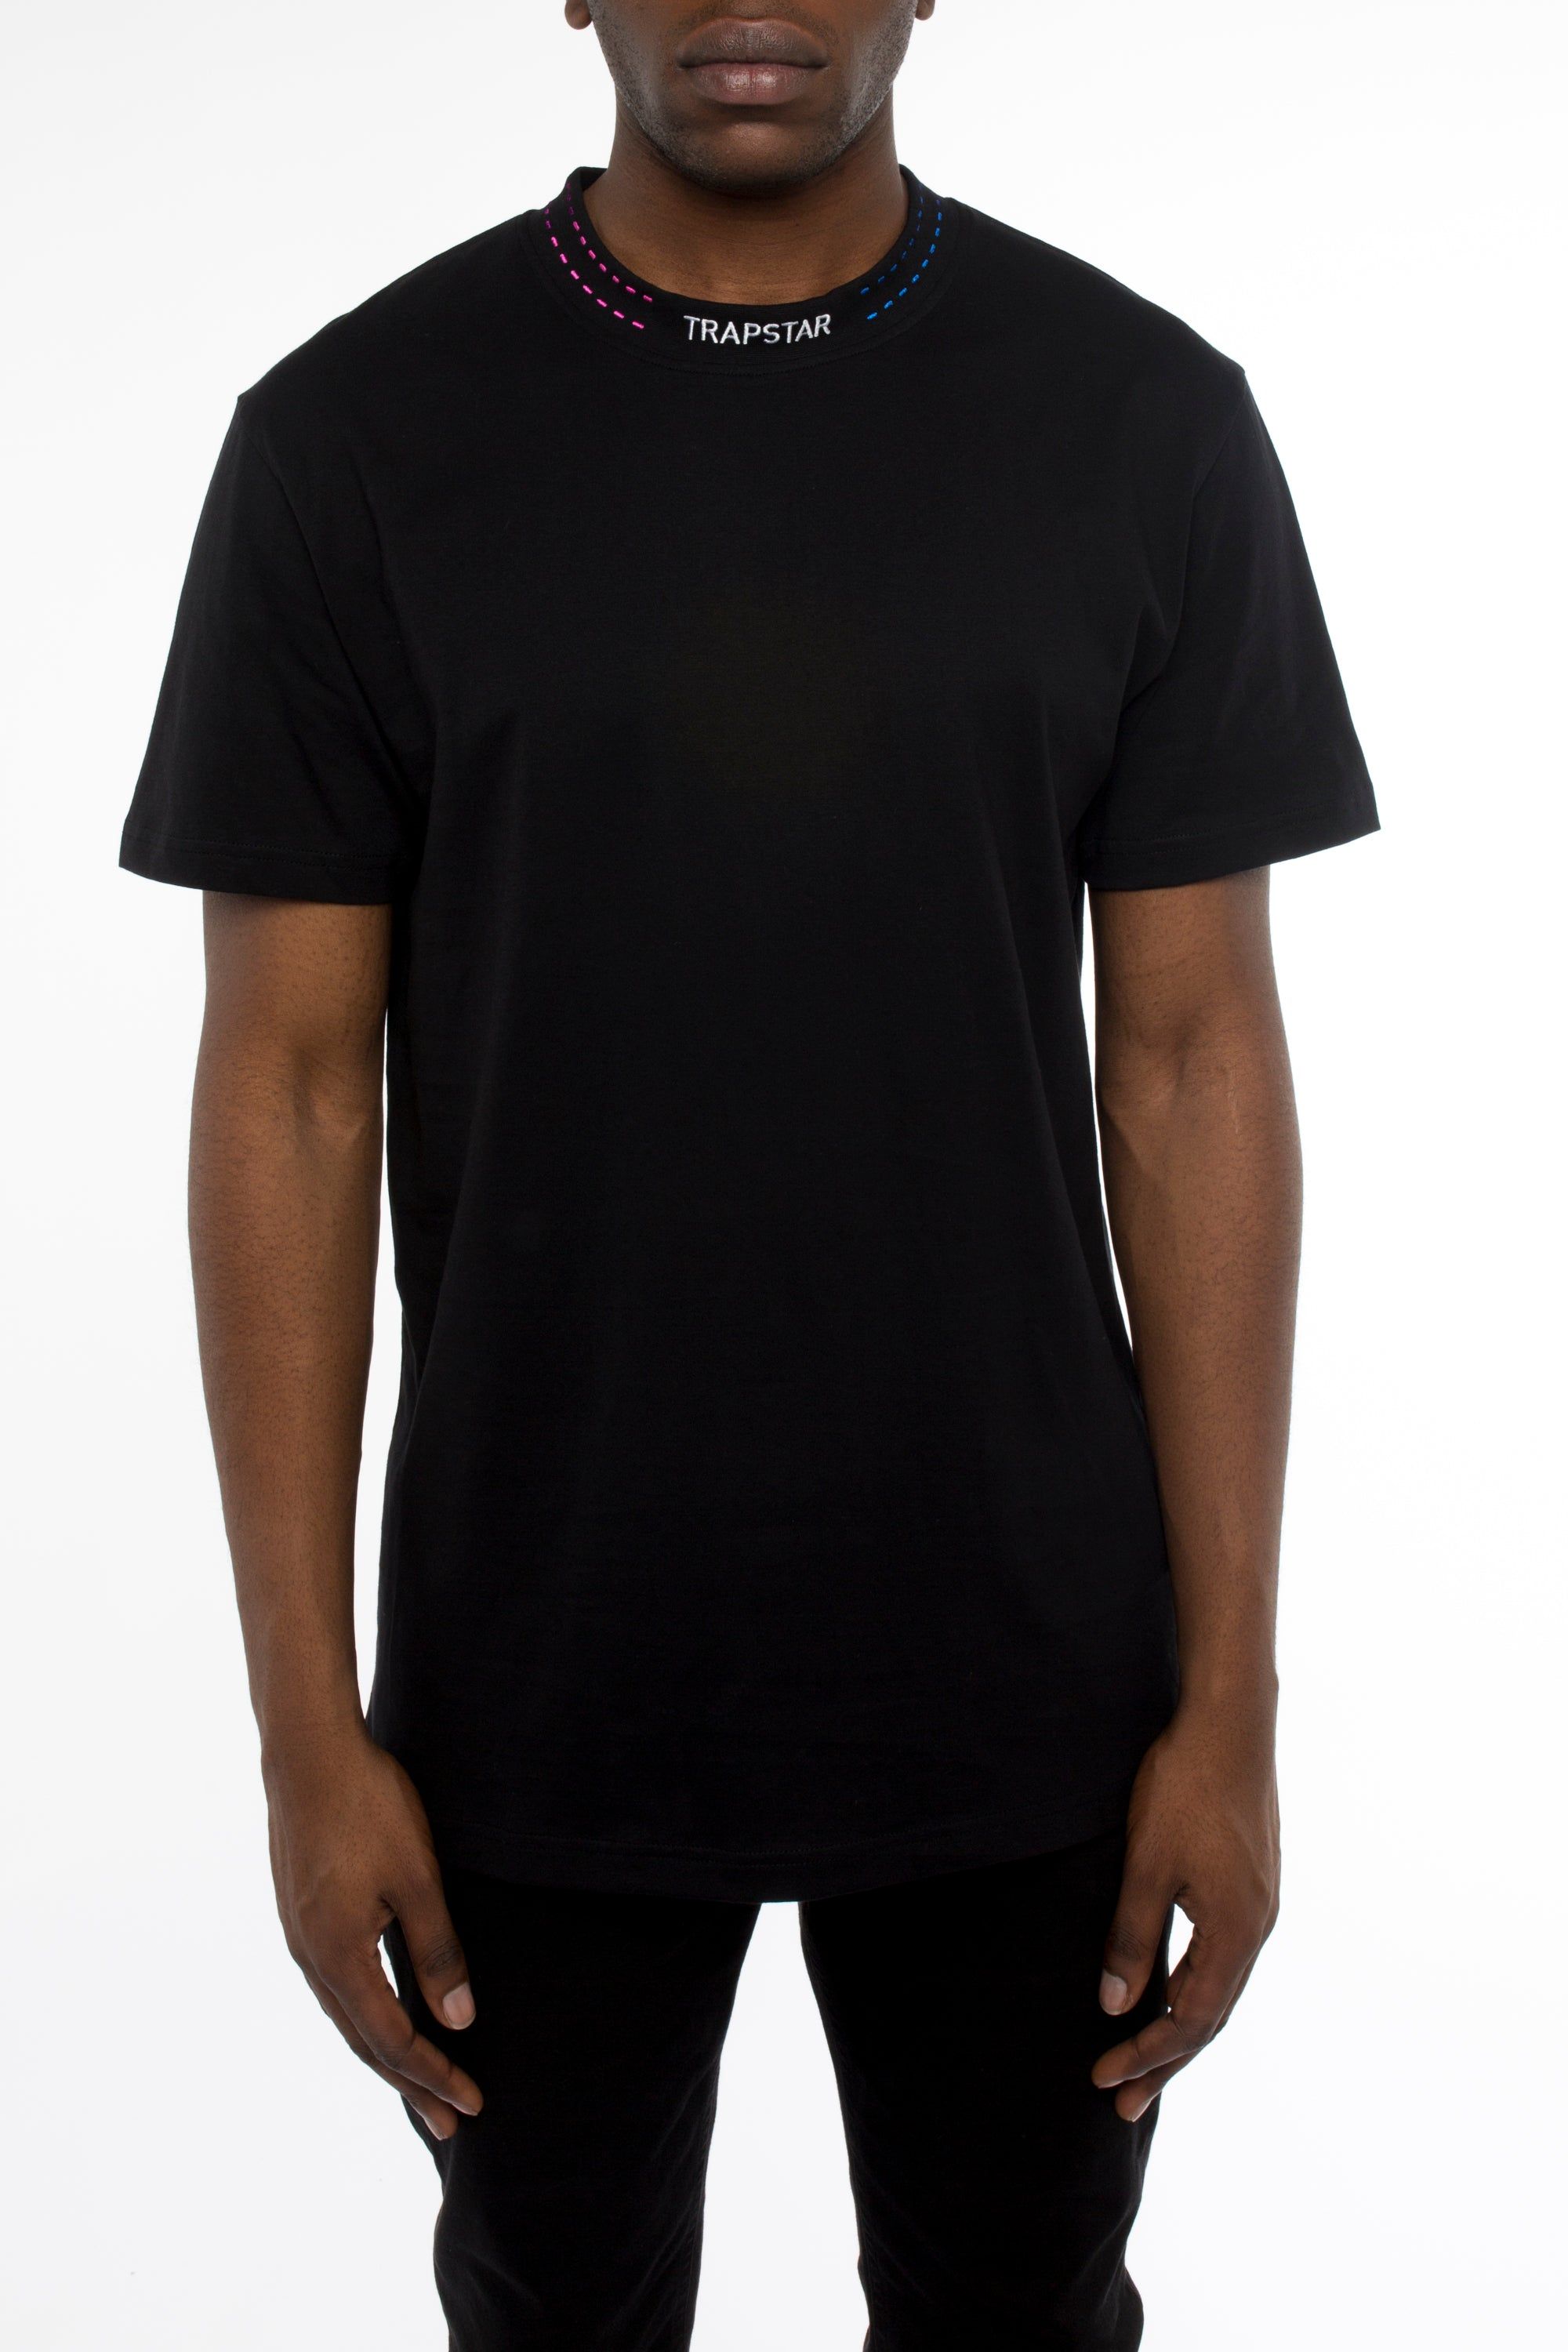 Trapstar Orbit Tee - Black